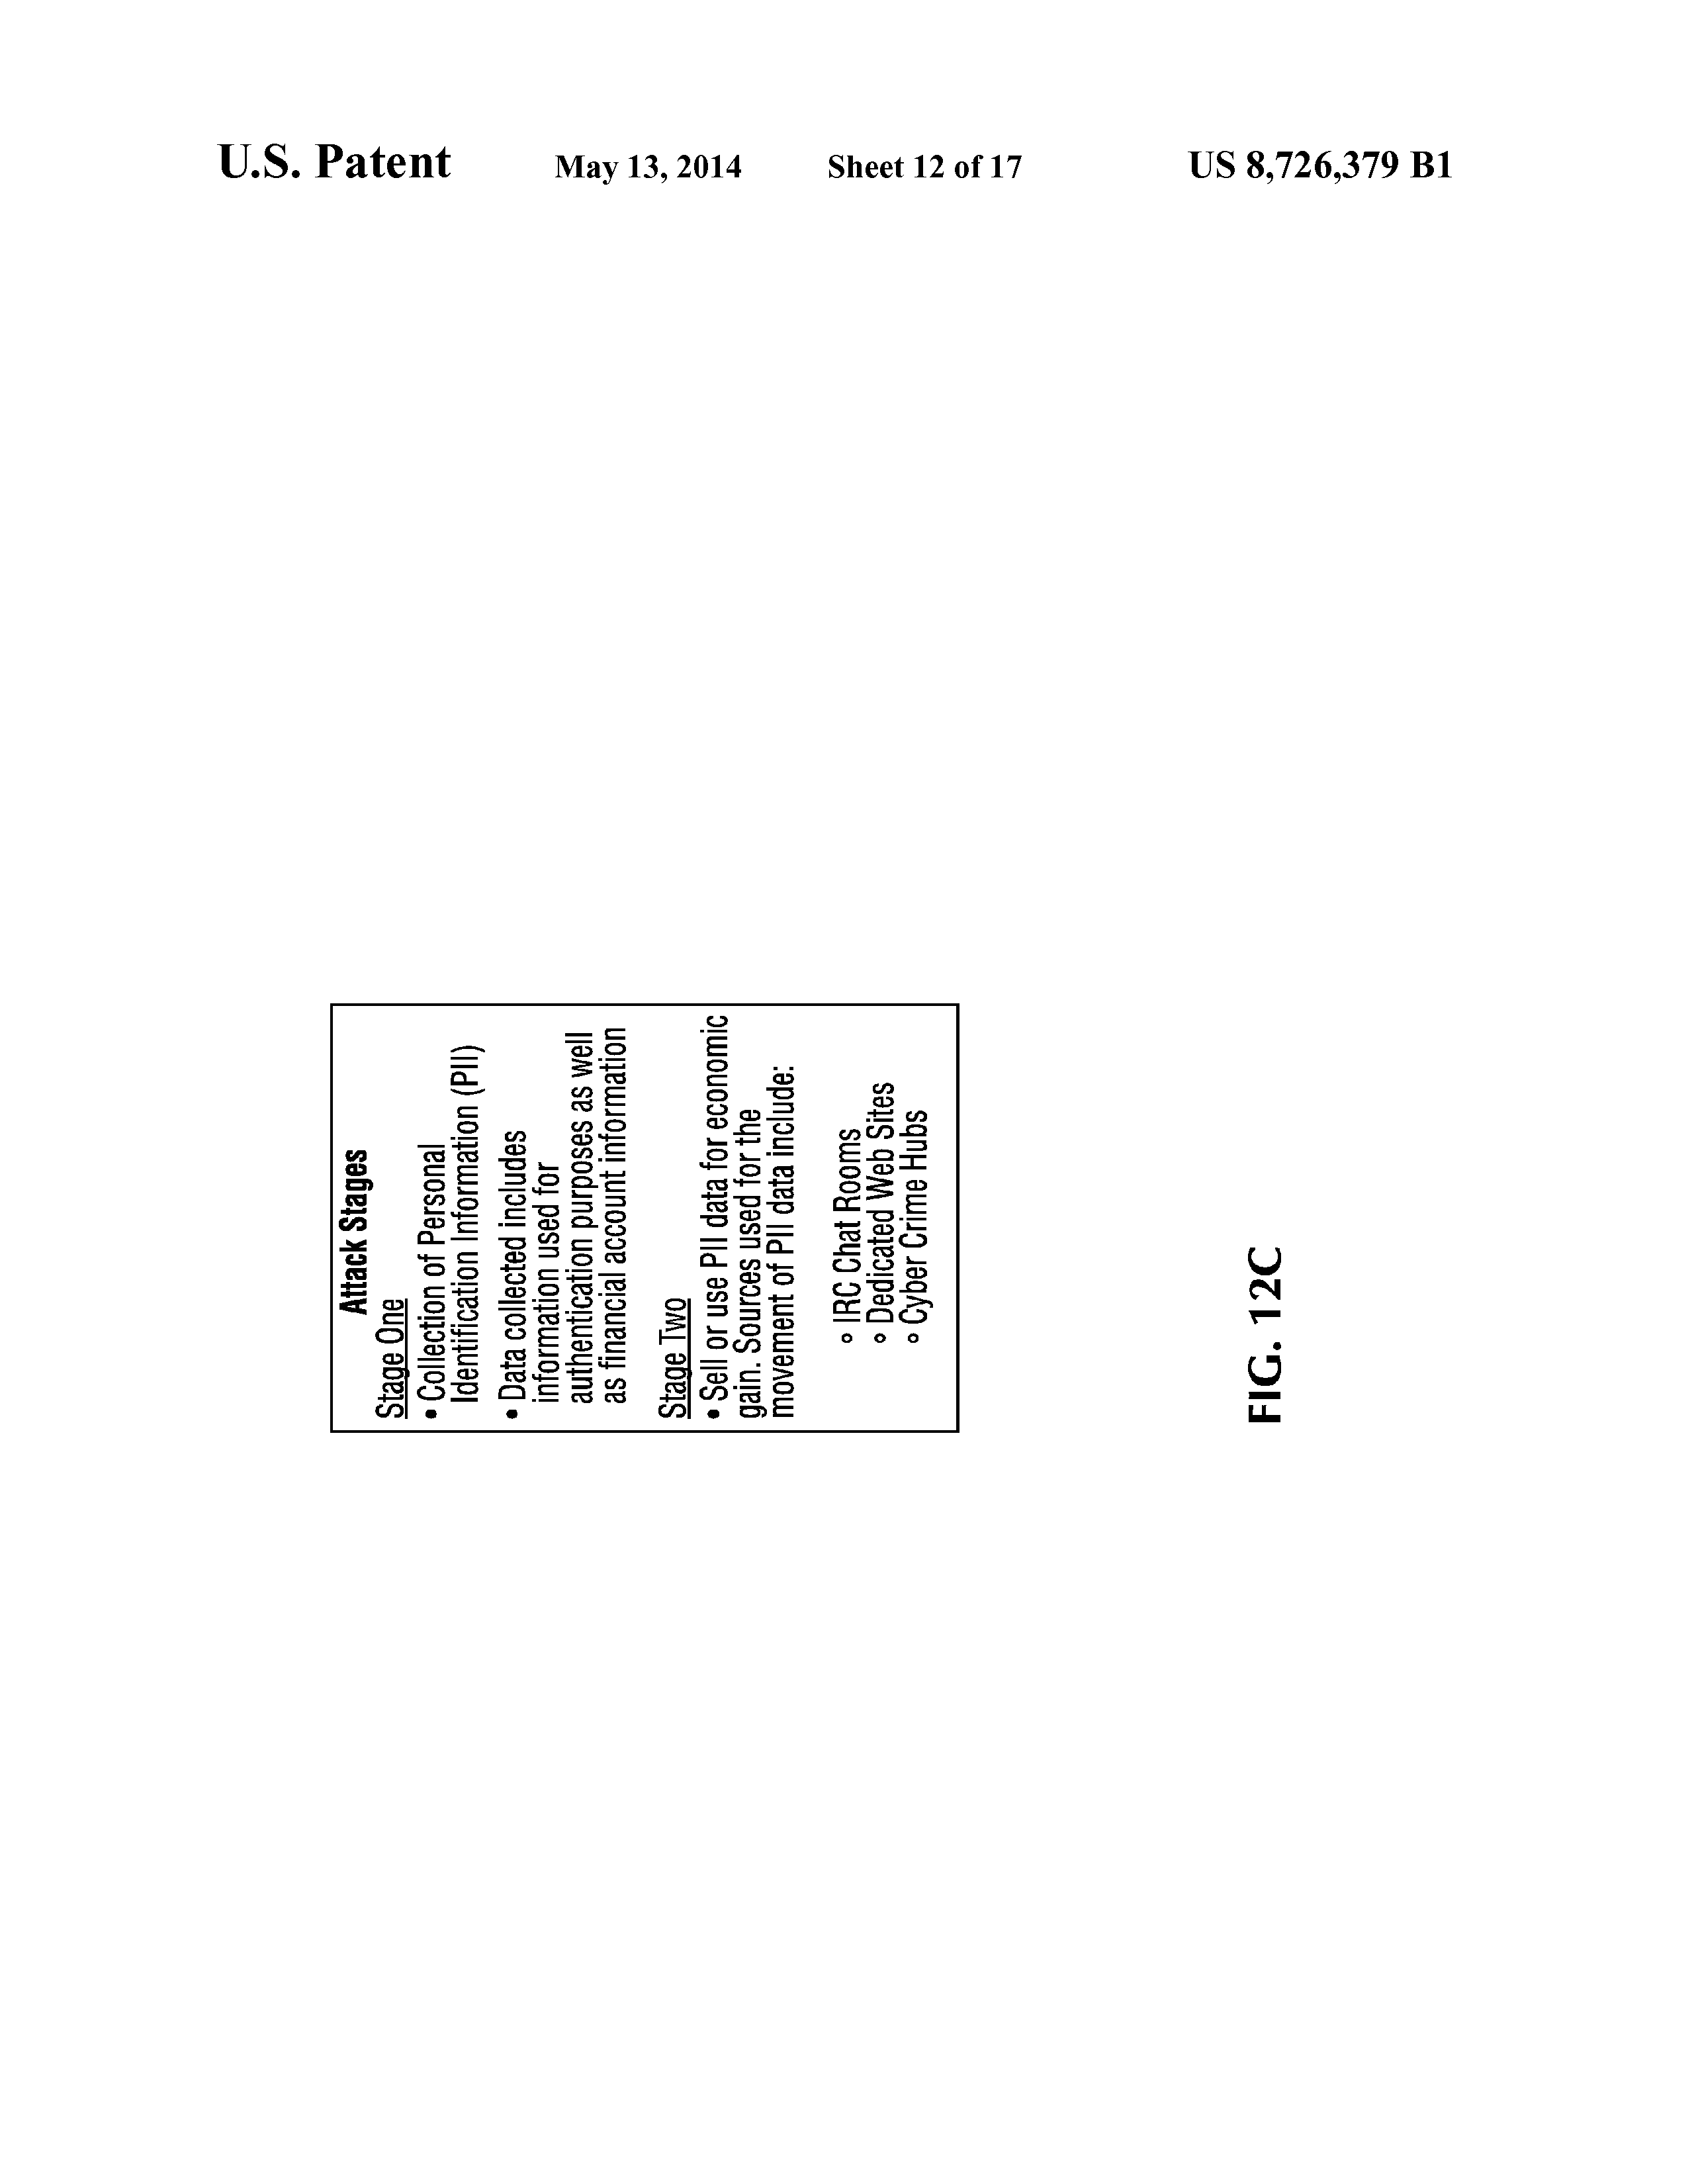 US 8726379 B1 - Systems And Methods For Dynamic Protection